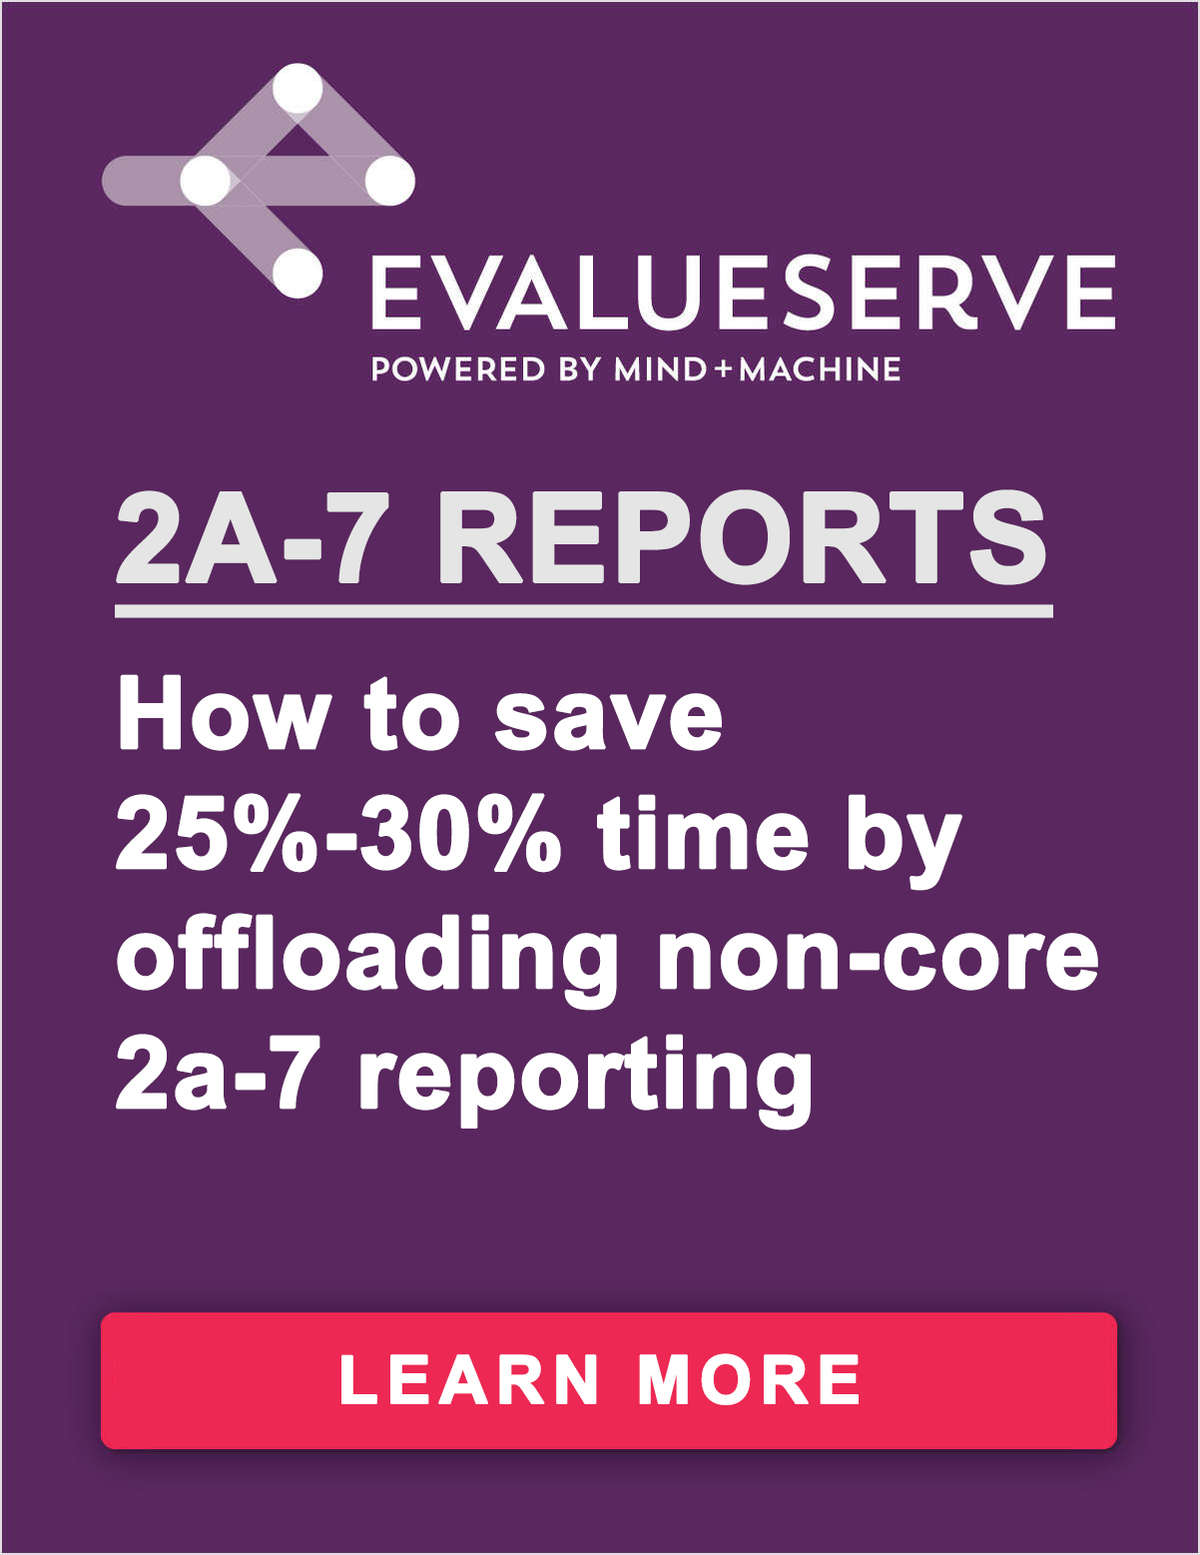 2a-7 Reports: How to Save 25%-30% Time by Offloading Non-Core 2a-7 Reporting